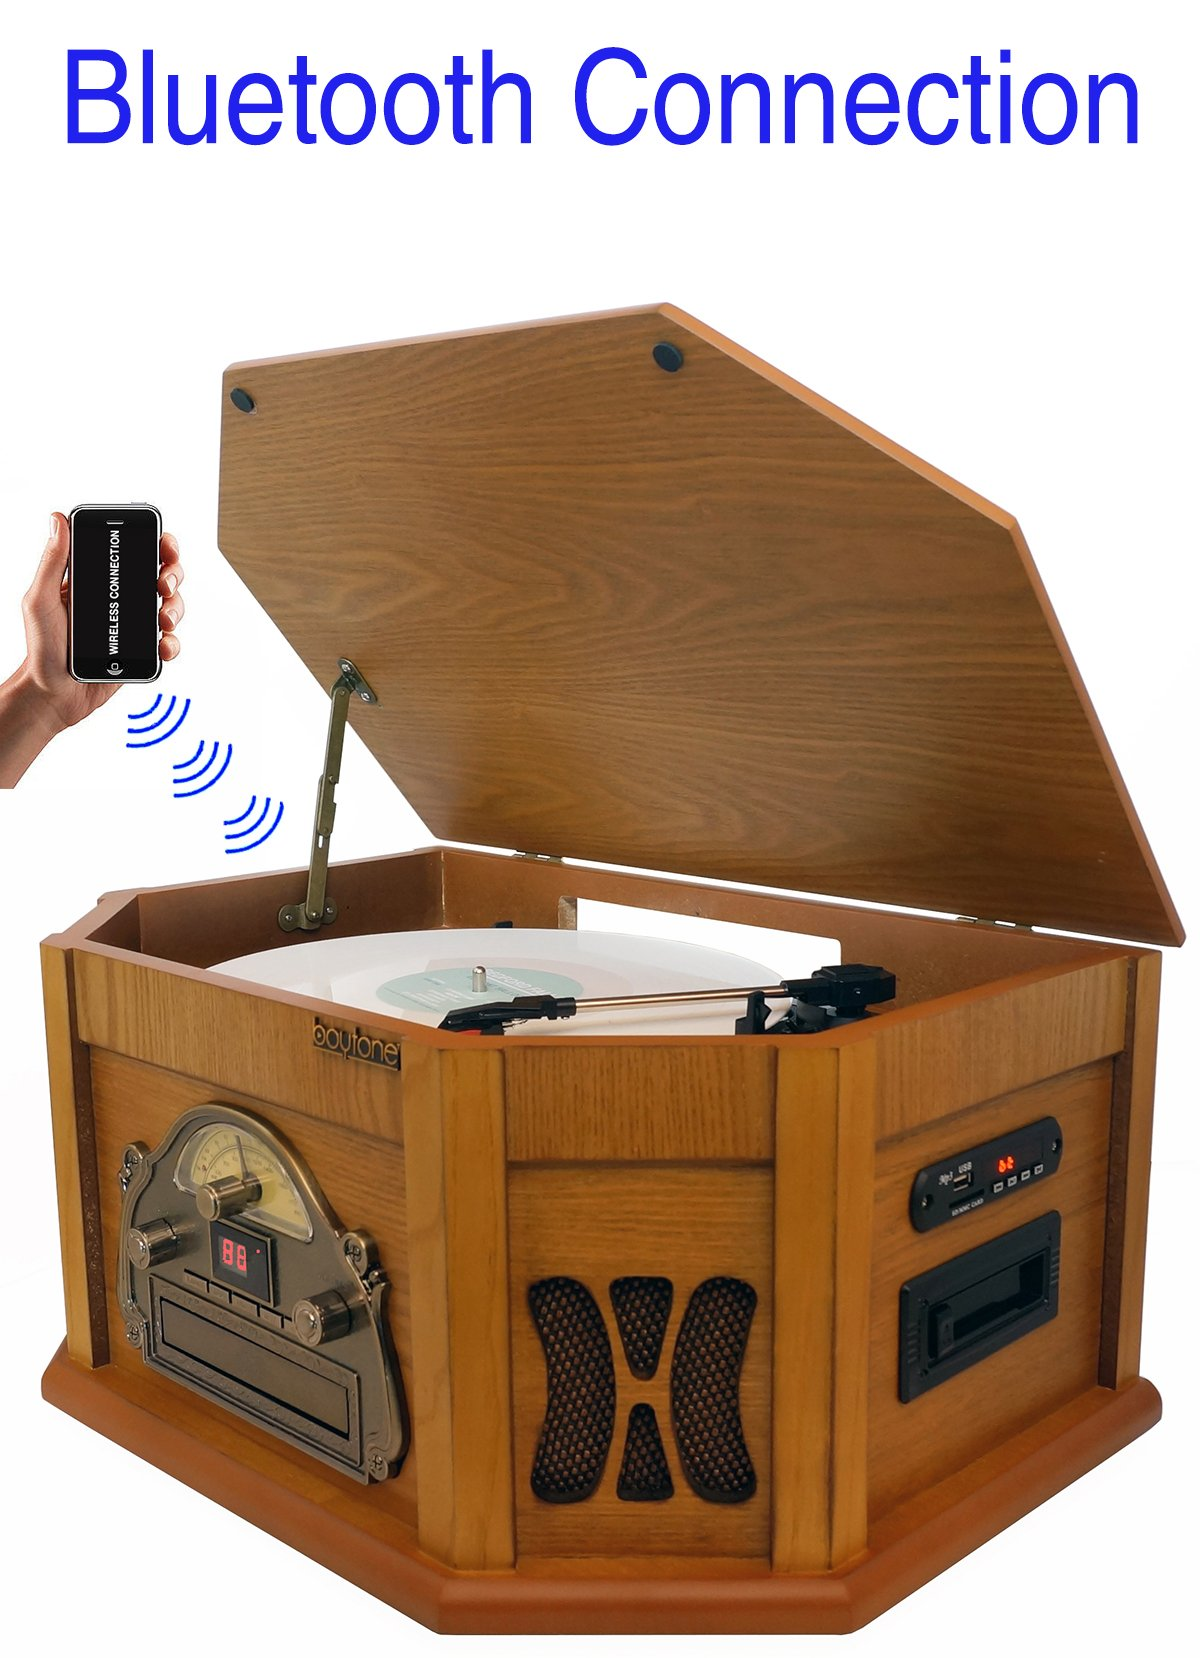 8-in-1 Boytone BT-25PW with Bluetooth Connection Natural wood Classic Turntable Stereo System, Vinyl Record Player, AM/FM, CD, Cassette, USB, SD slot. 2 Built-in Speaker, Remote Control, MP 3 Players